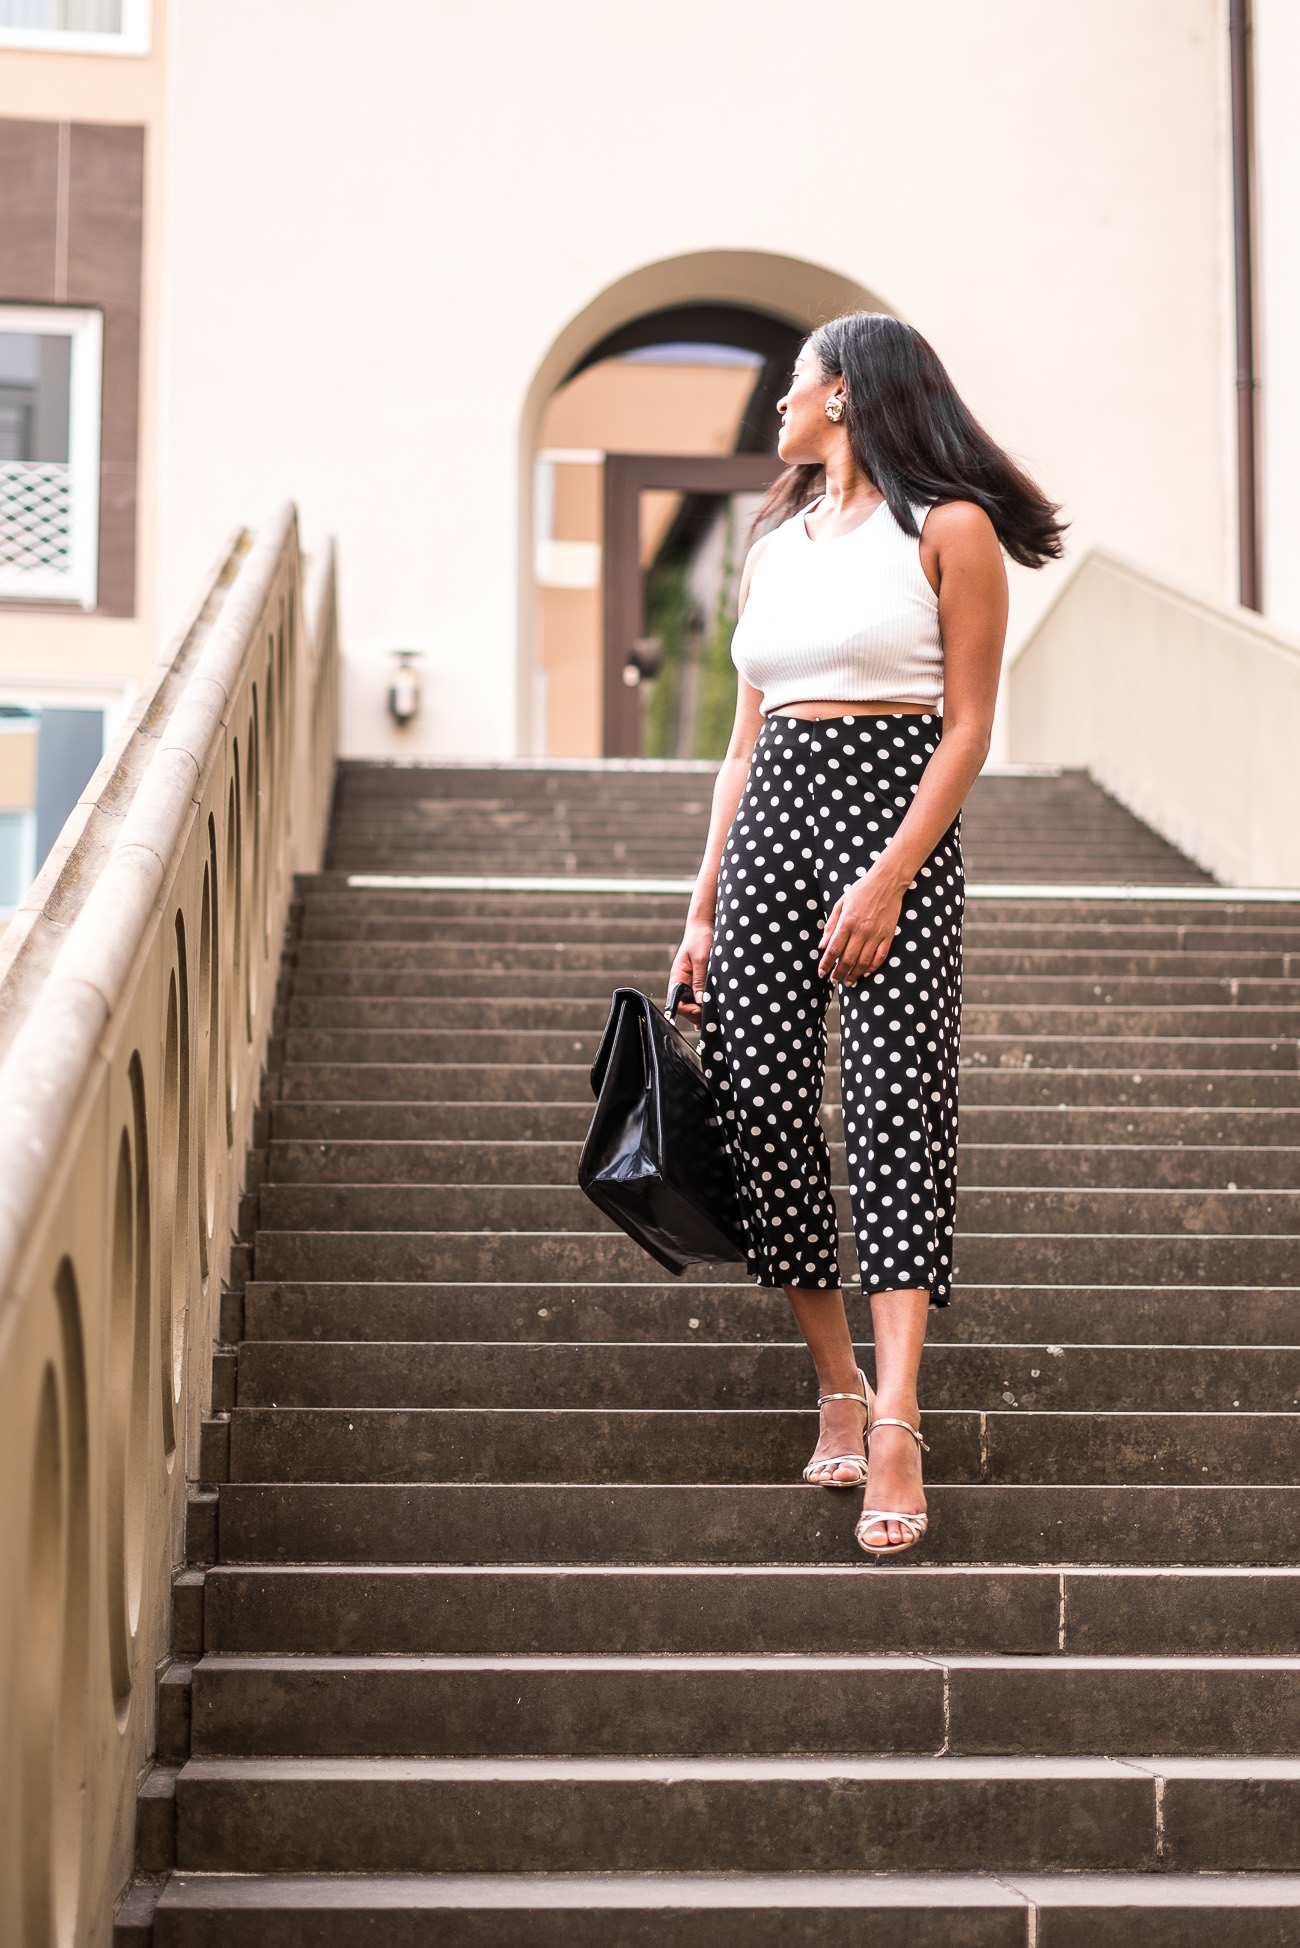 Black and White: The Polka Dot Culotte